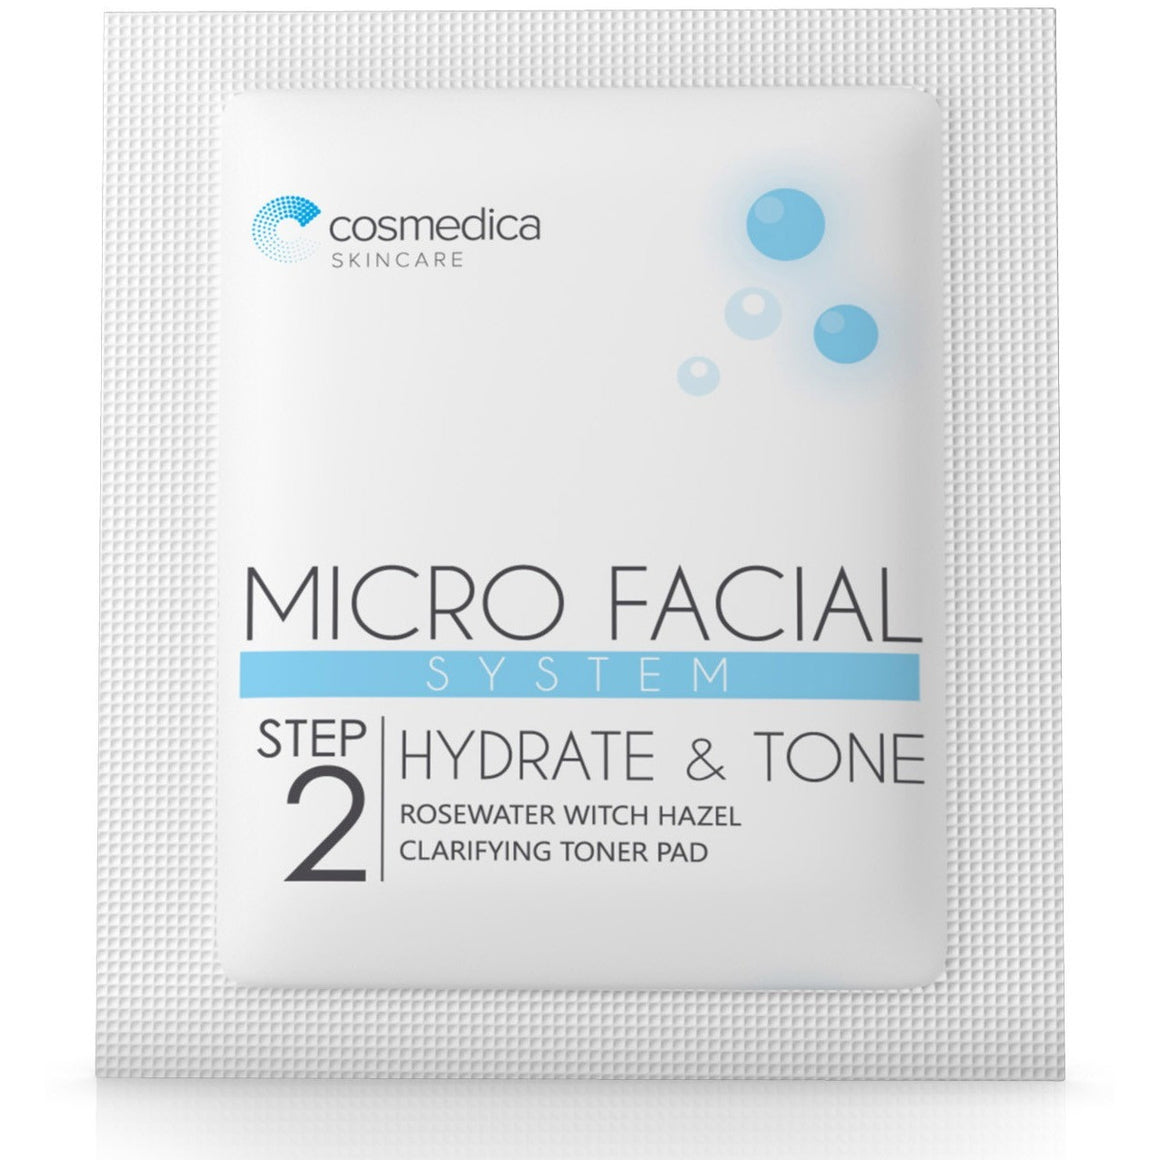 MICRO FACIAL SYSTEM 3 Step At Home Treatment For Glowing Skin - Cosmedica Skincare  - 4